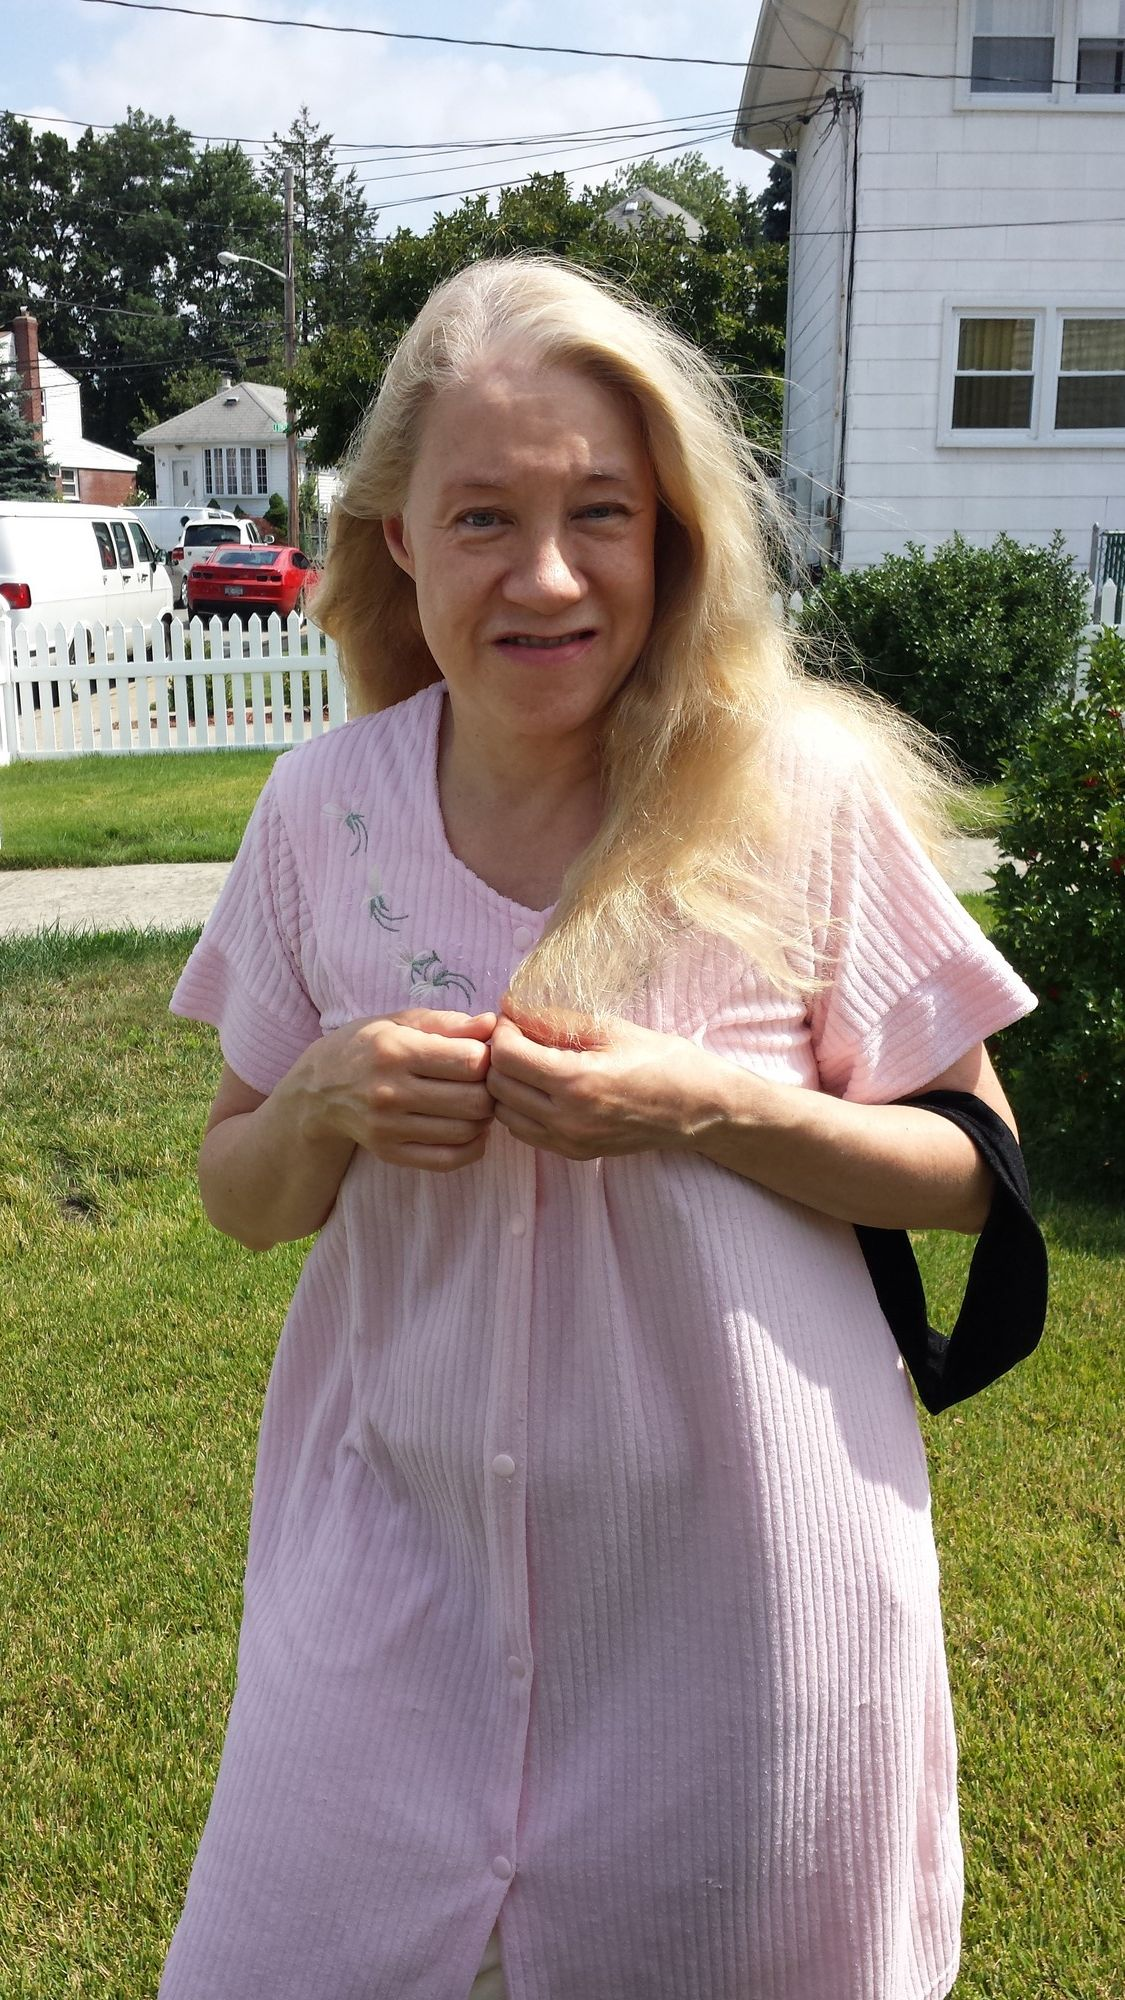 Elmont resident Judith A. Senning thought the loud noises resonating around her neighborhood in the early hours of the morning were either a terrorist attack or a drunken driver.